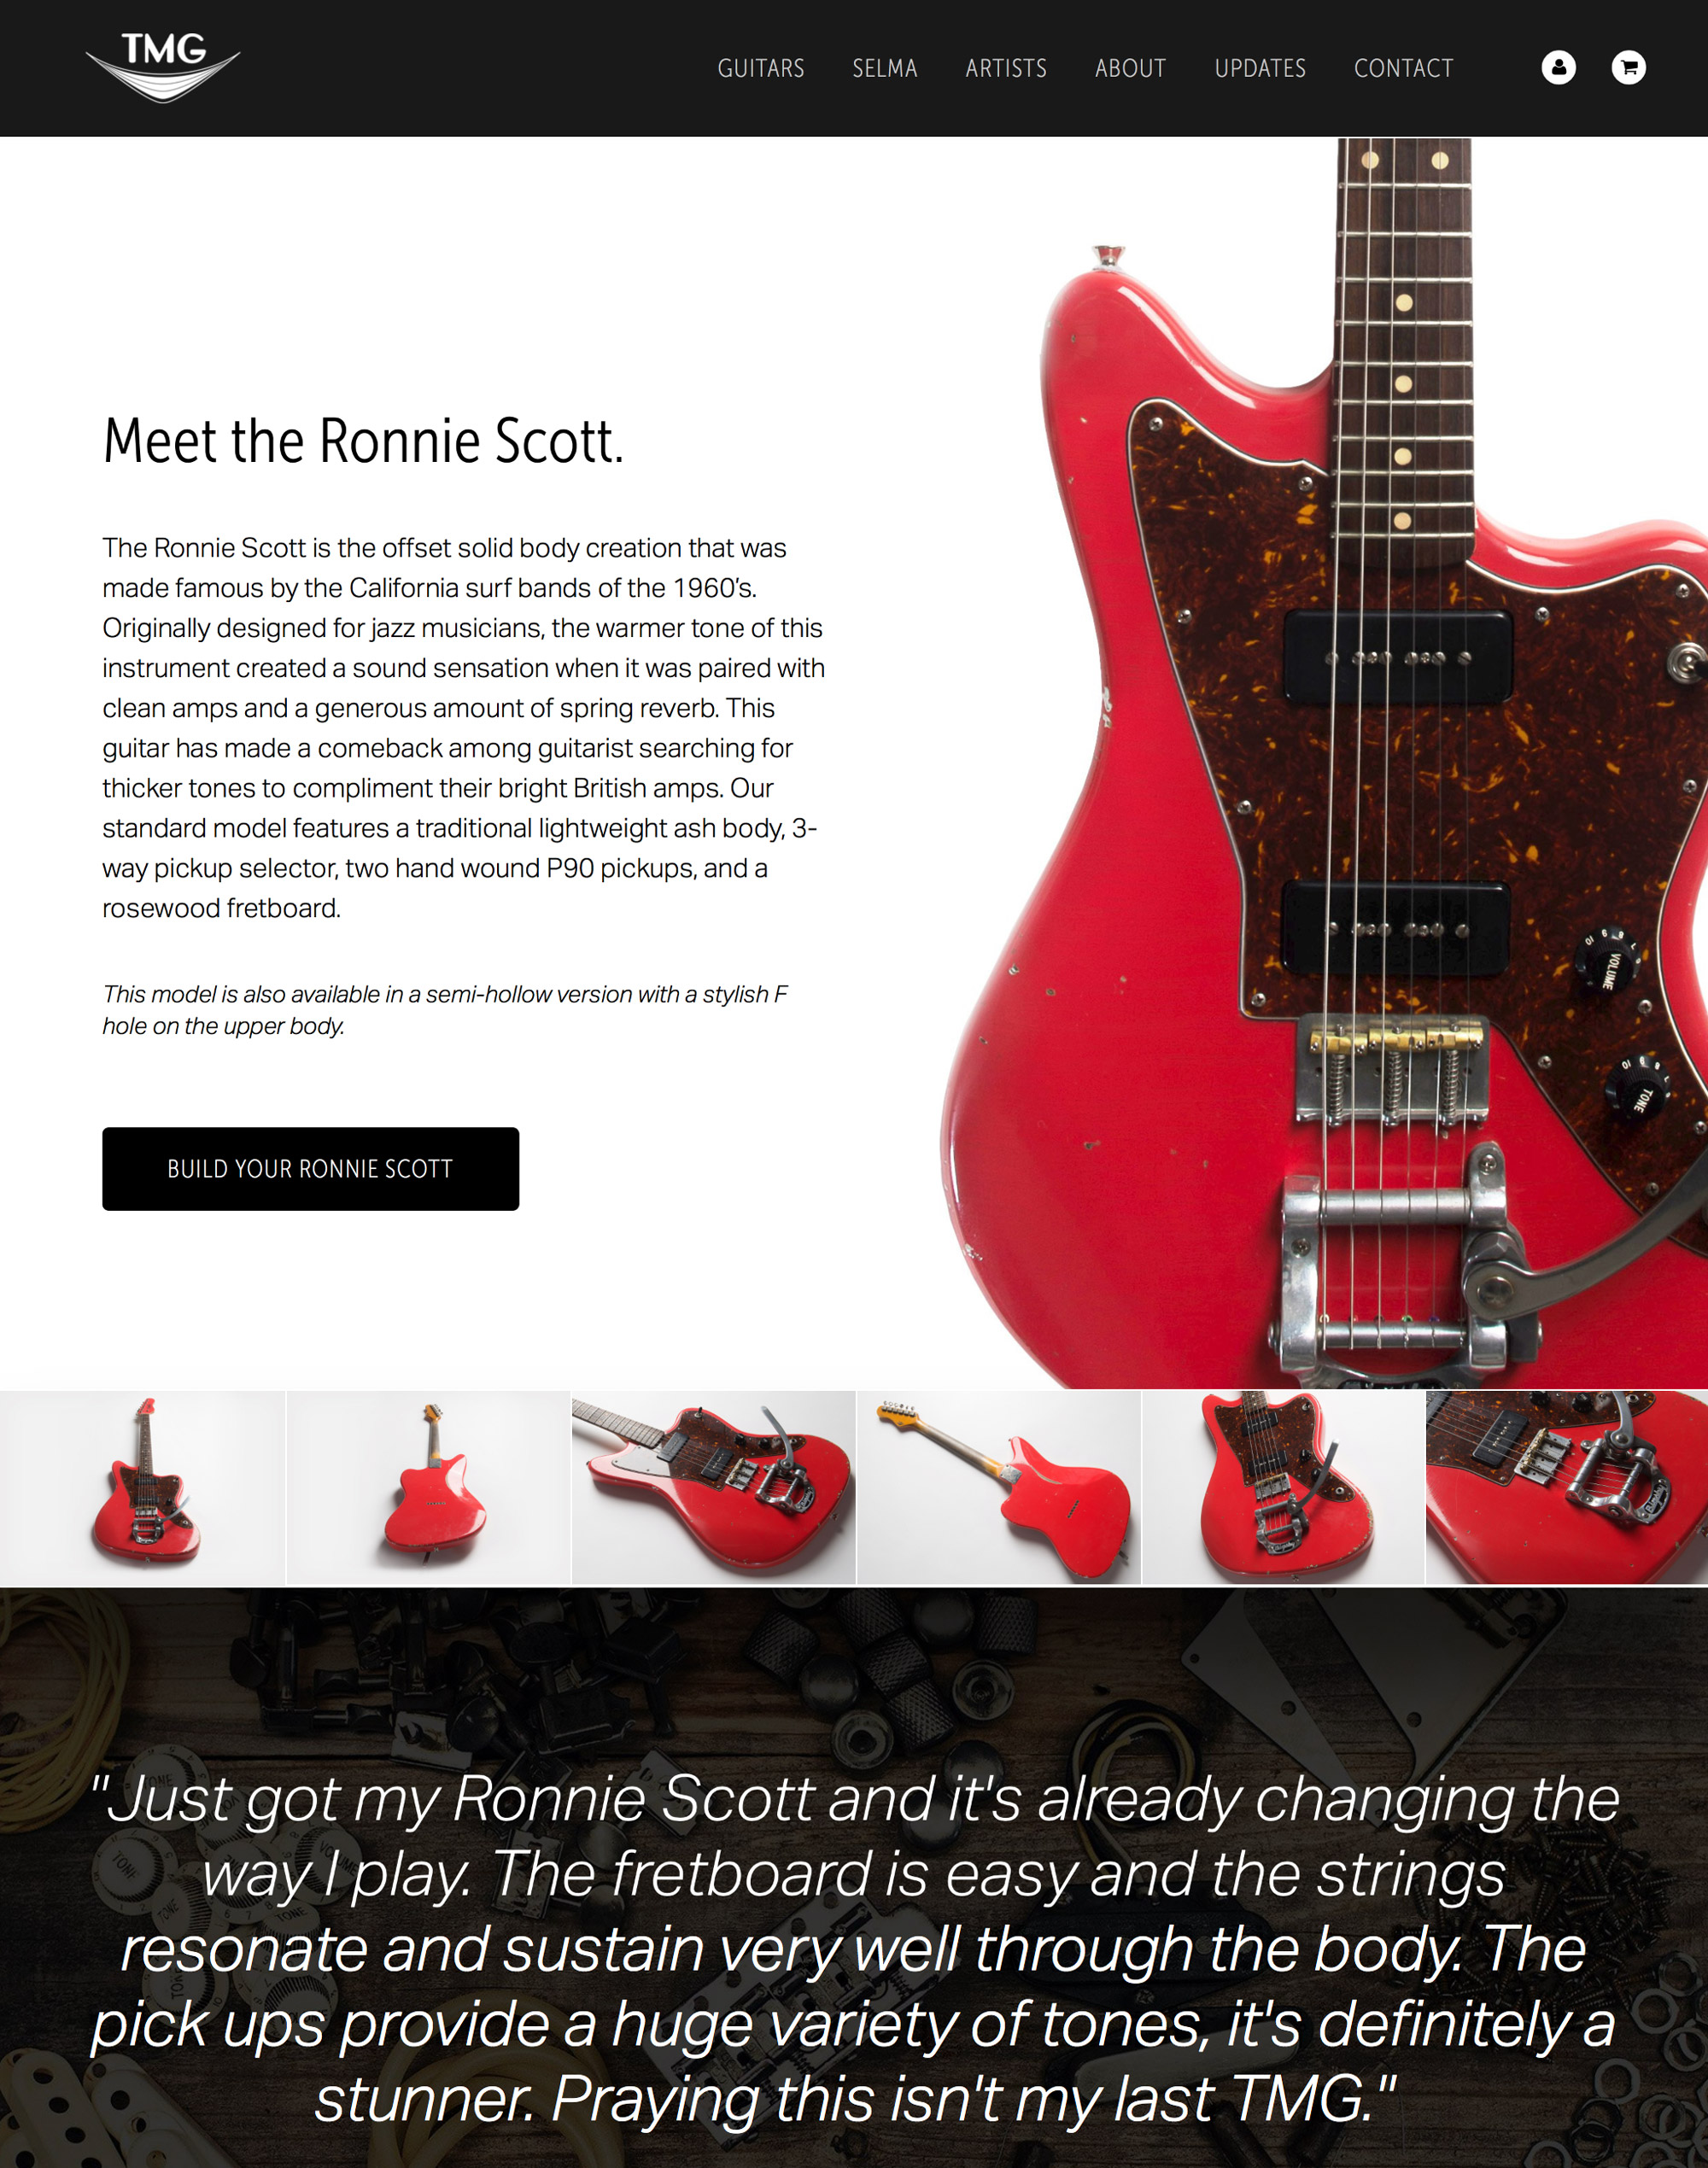 TMG Guitar Co website on iPad Air